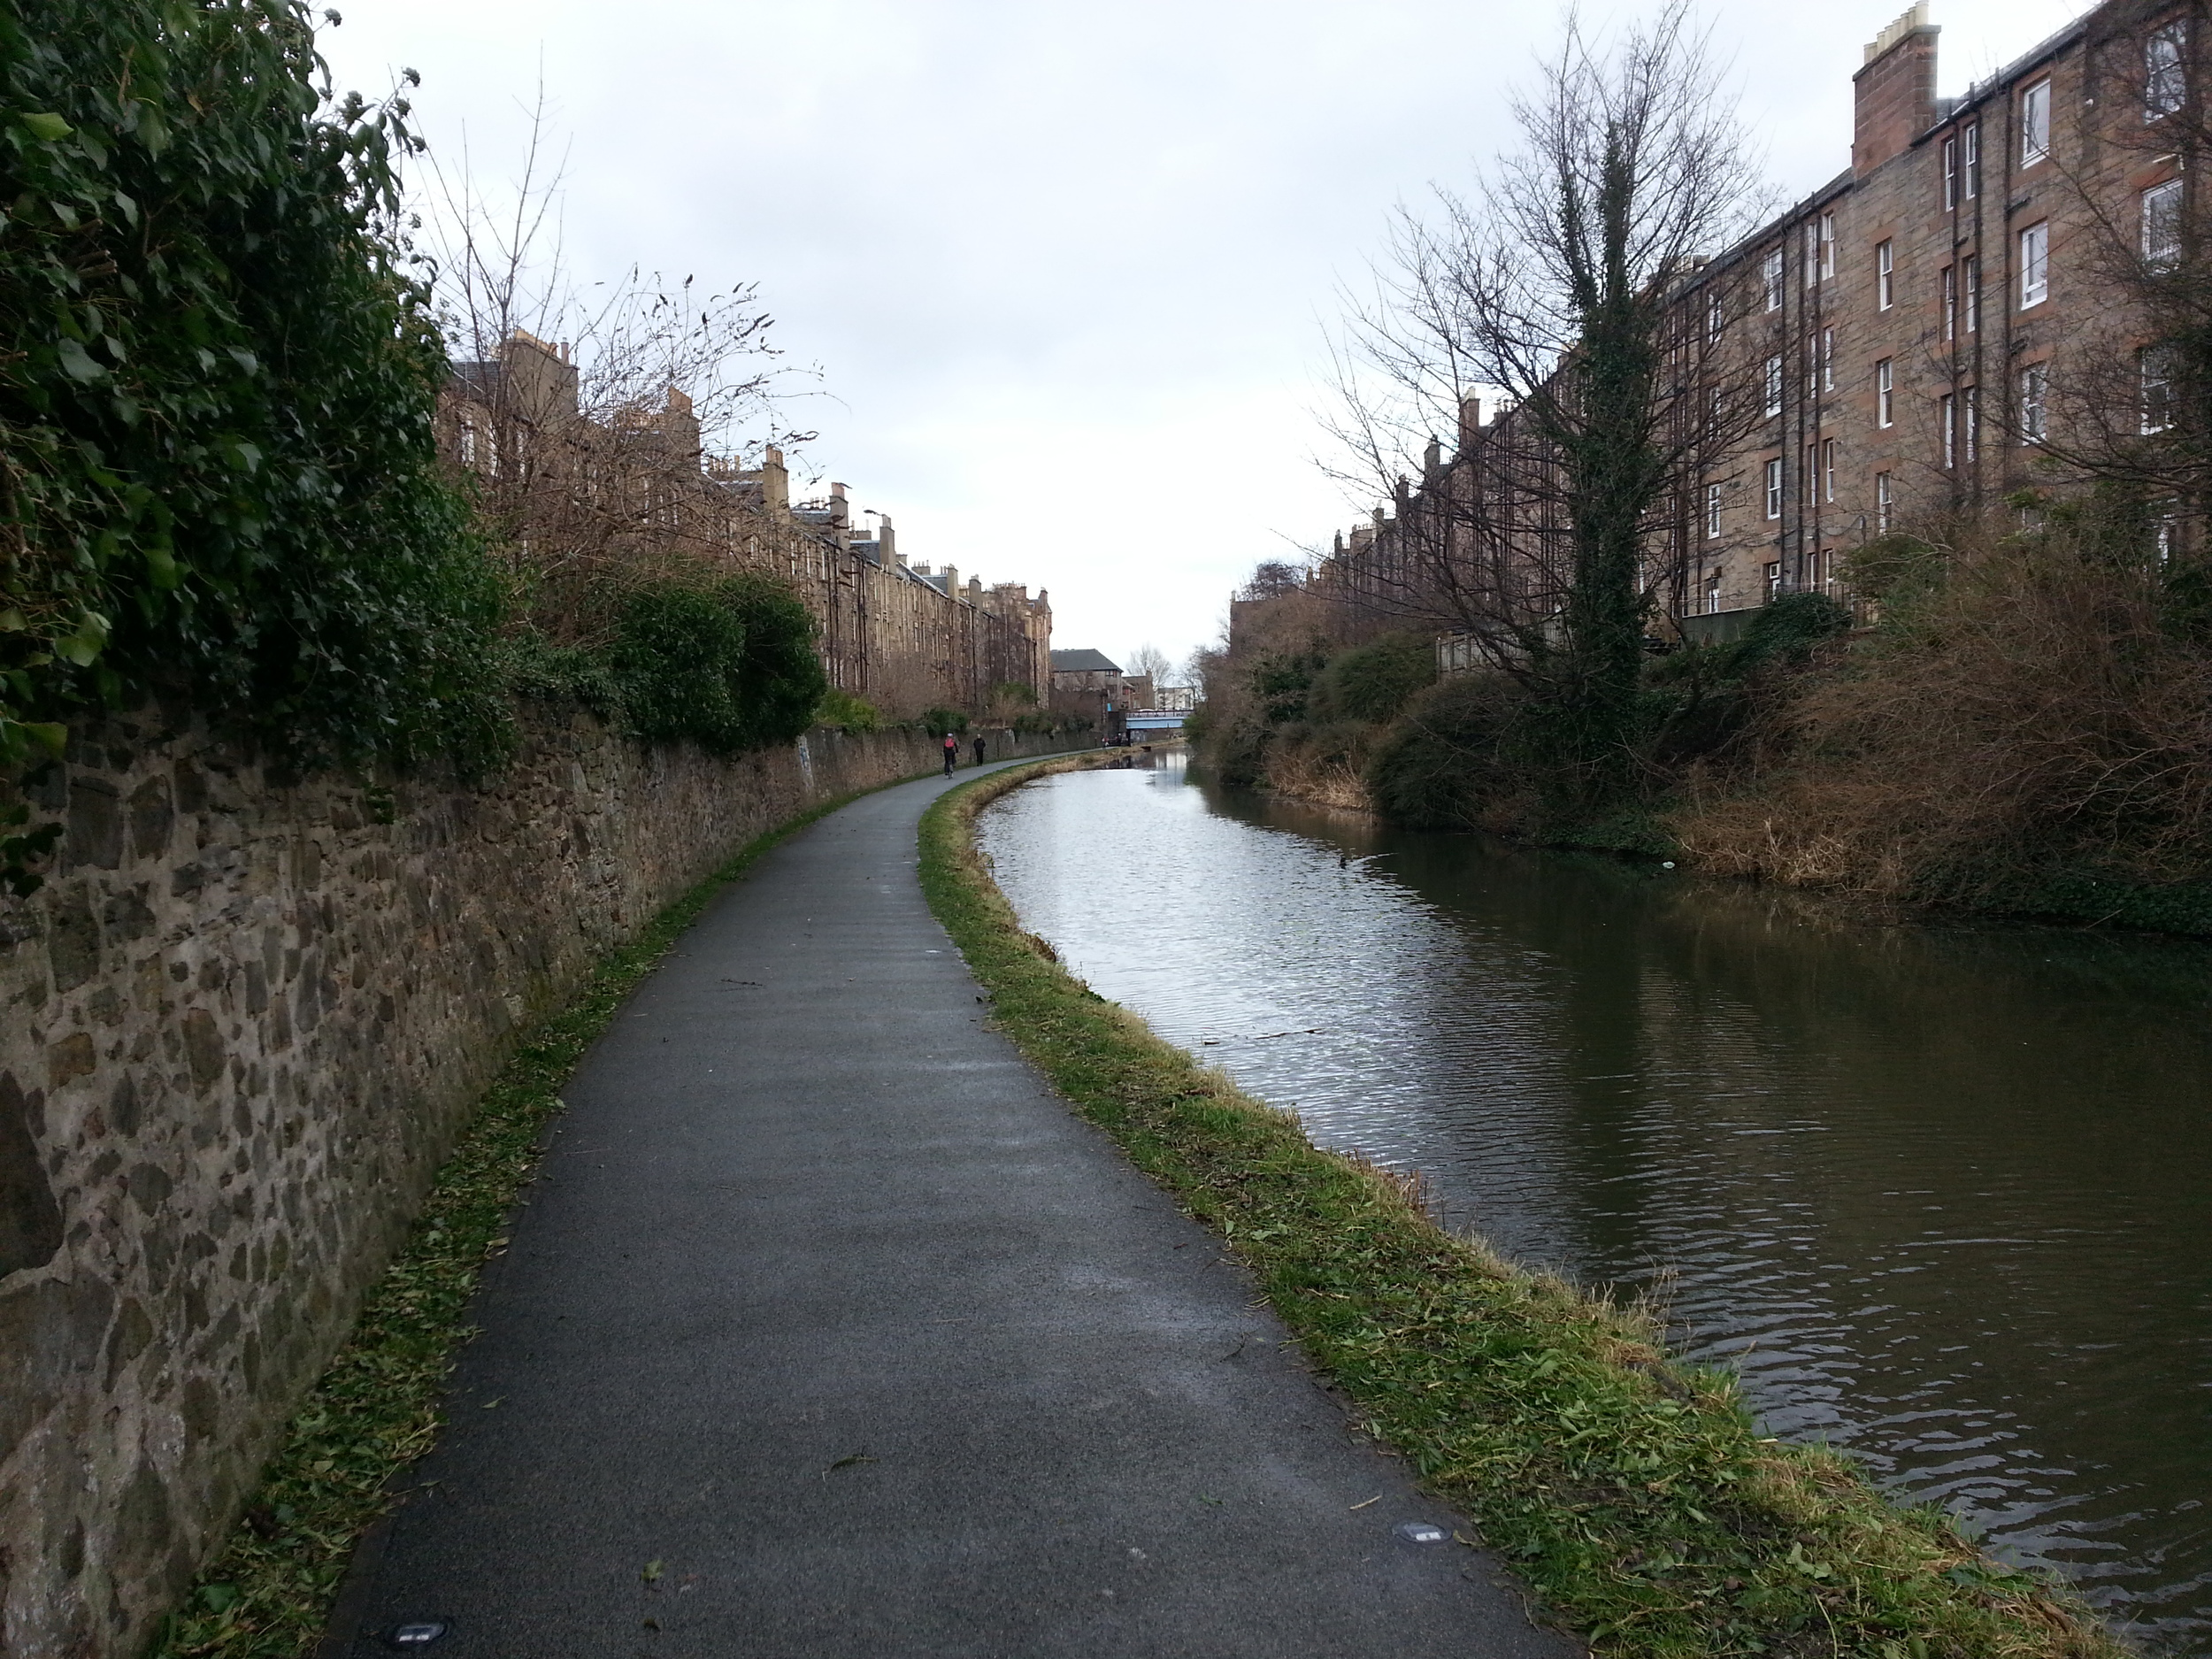 The Union Canal in Edinburgh, Scotland. 2014.